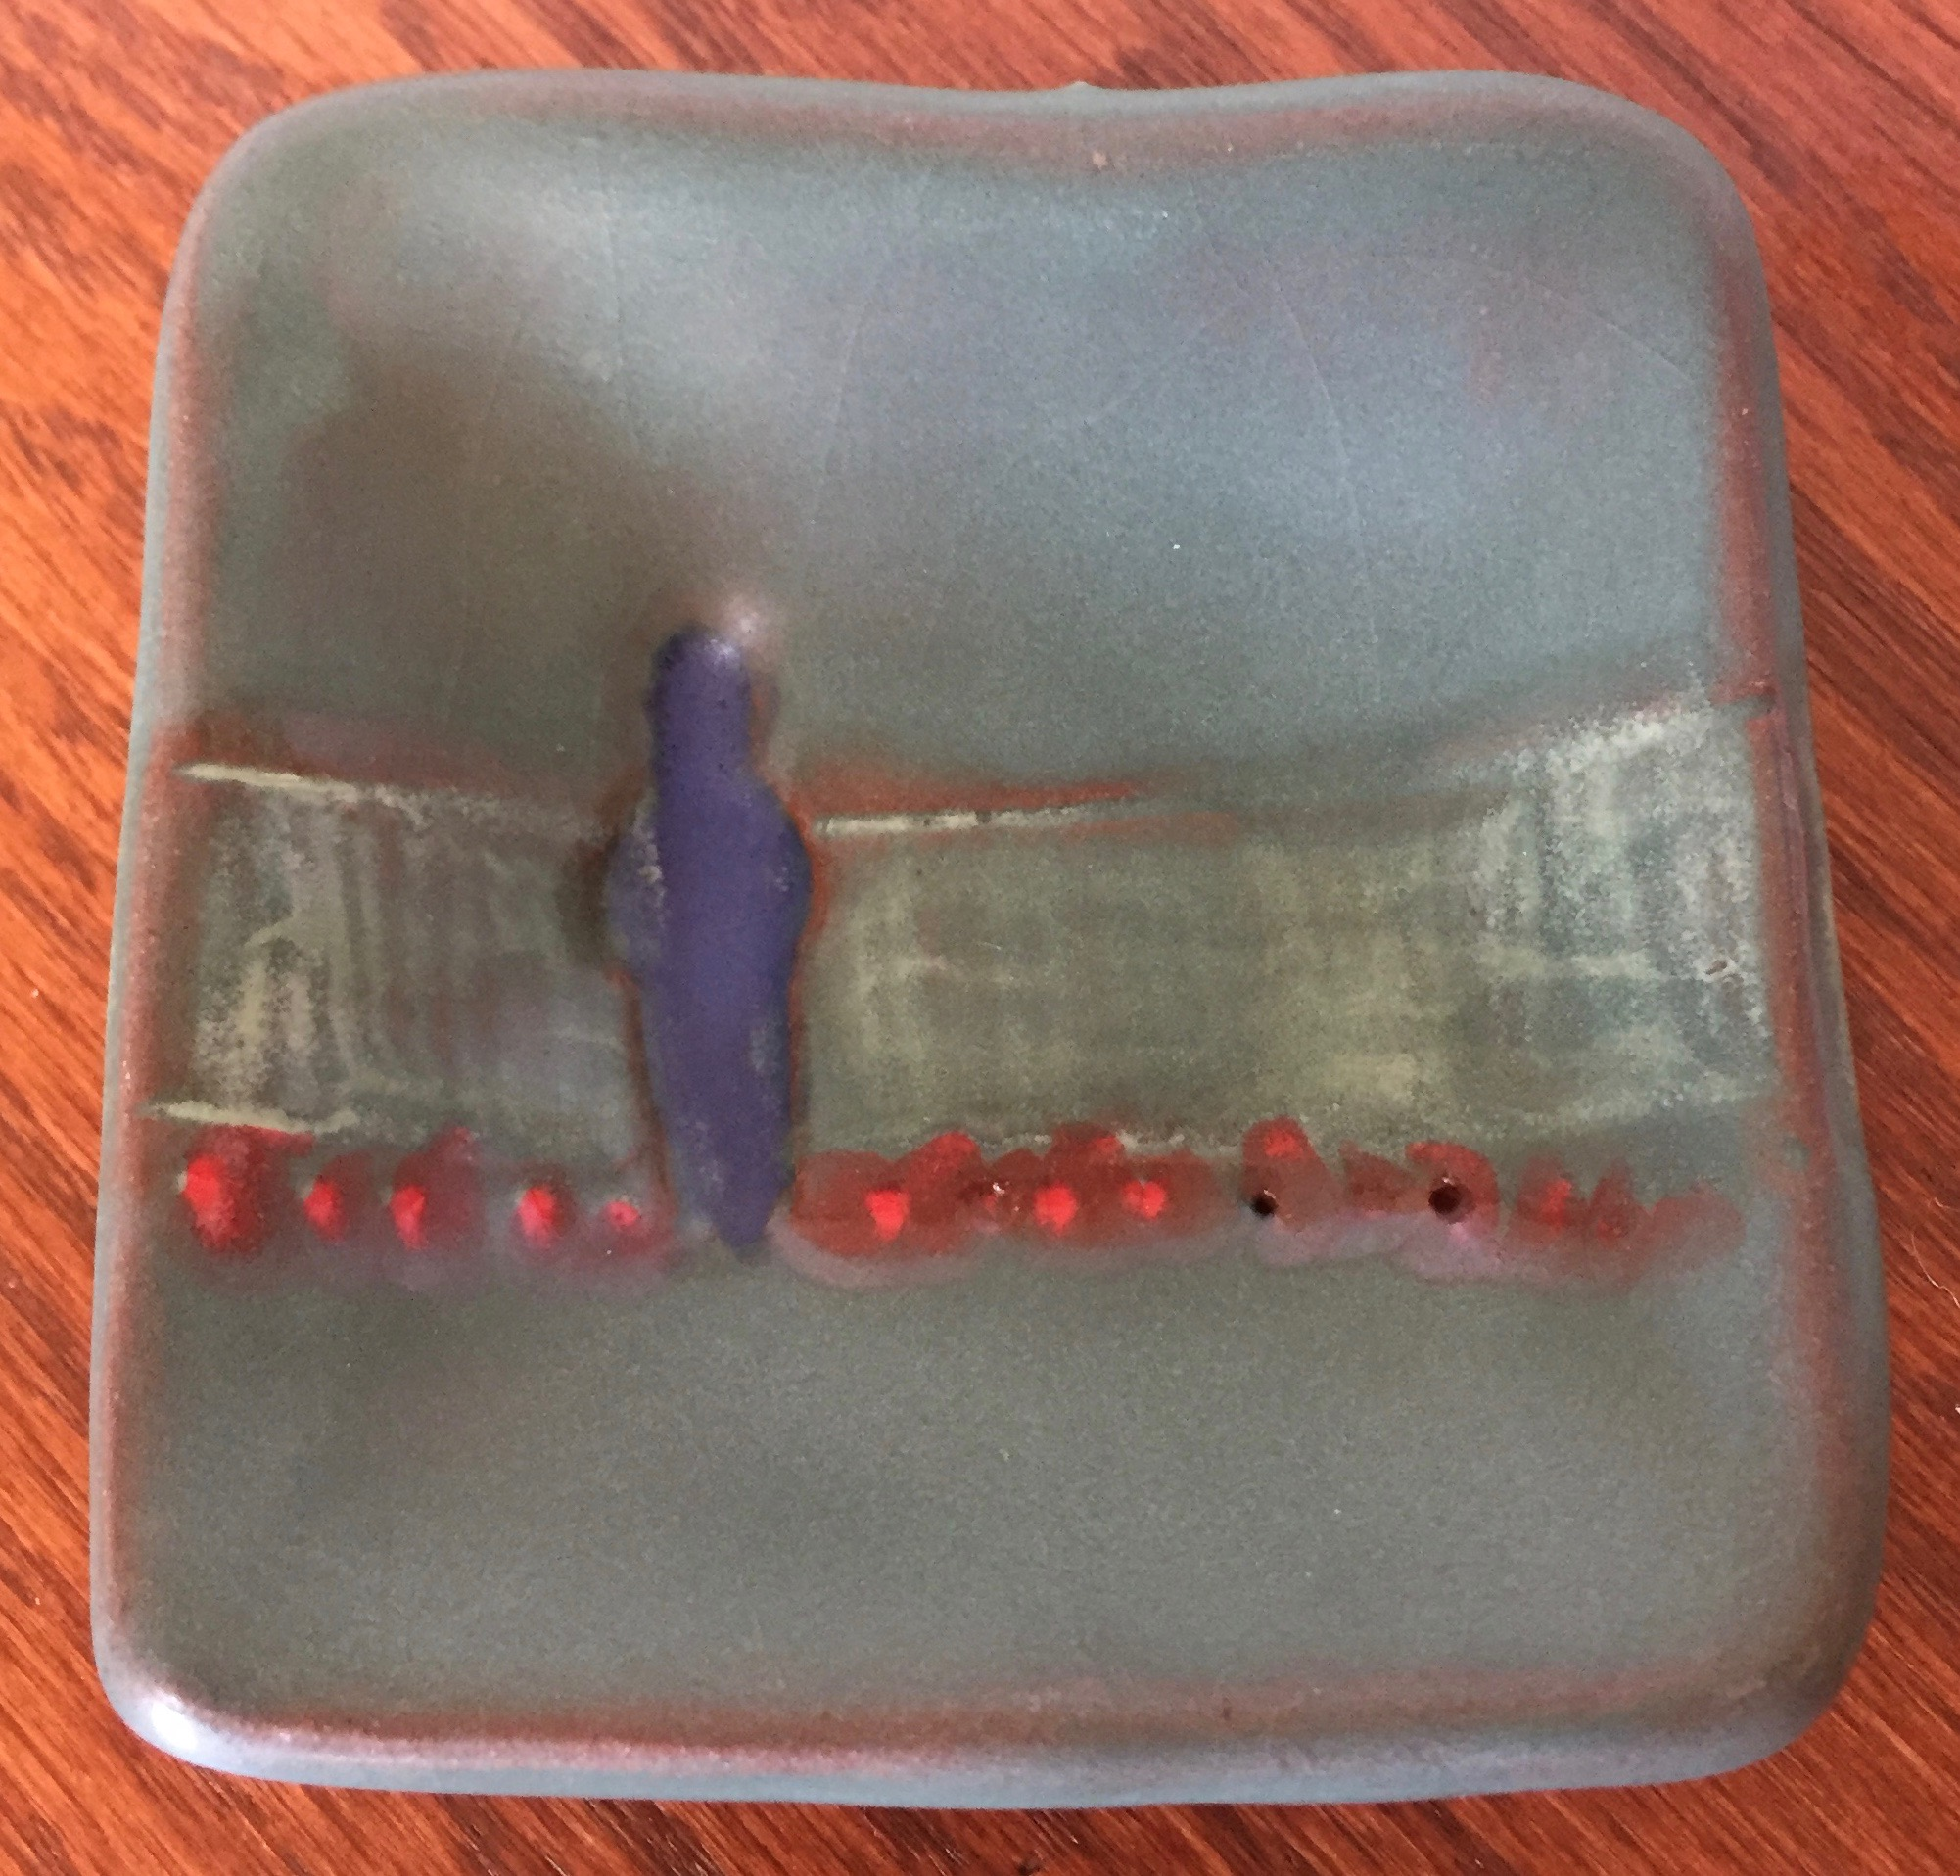 This small Lisa Neimeth dish is one of the treasures I purchased on my Alabama trip.